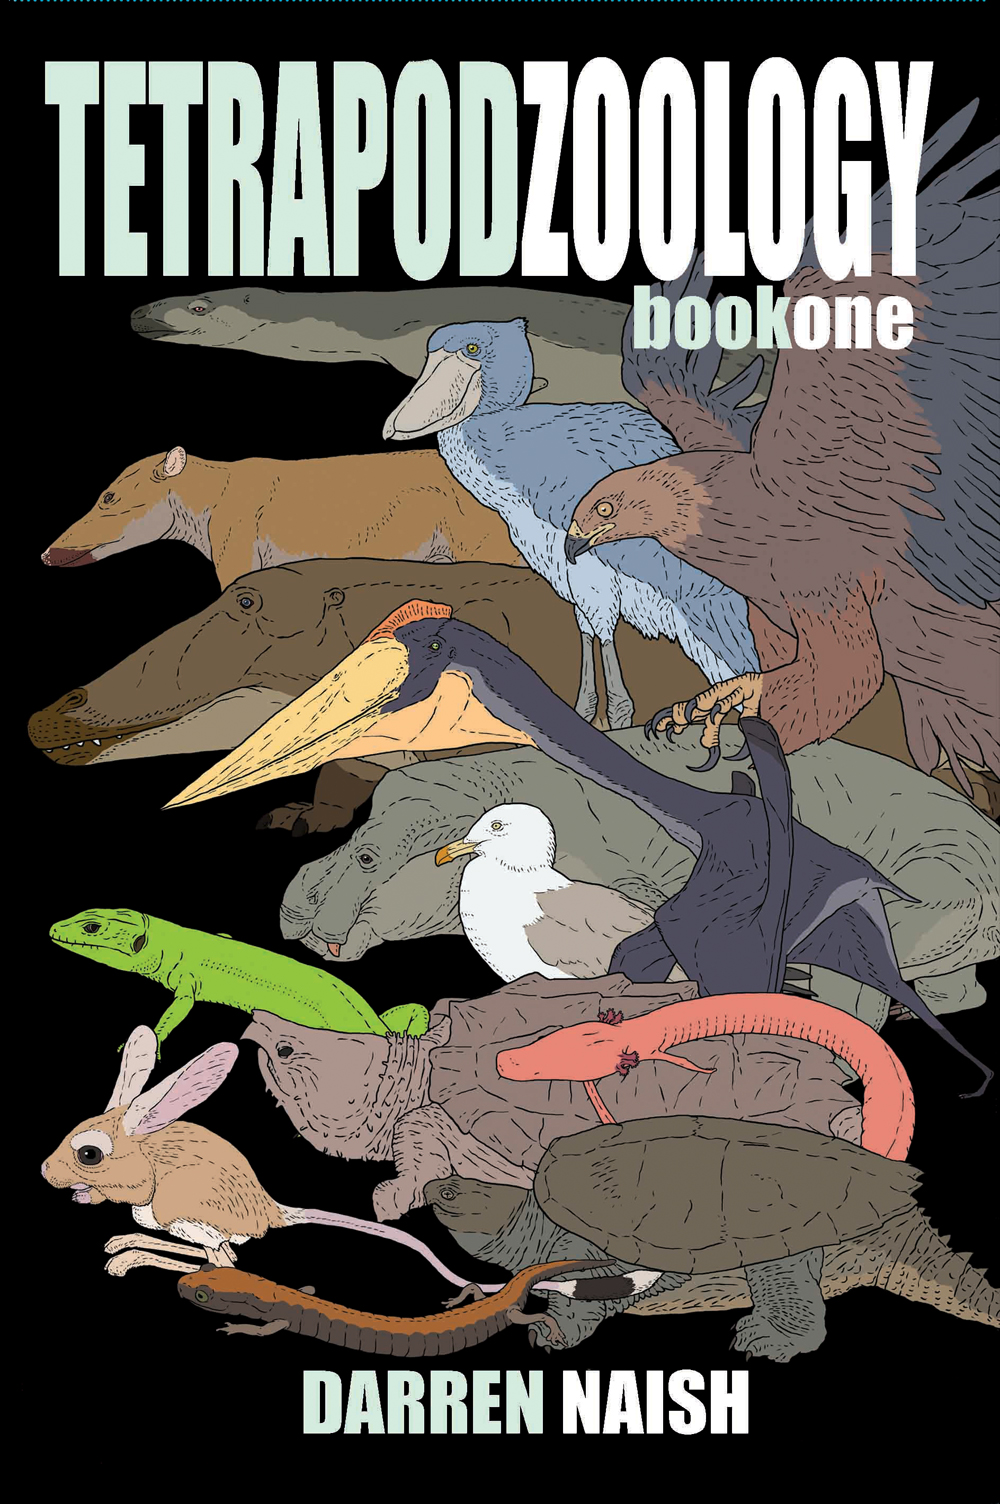 Tet-Zoo-Book-One-is-8-final-cover-1000-px-tiny-Sept-2018-Darren-Naish-Tetrapod-Zoology.jpg